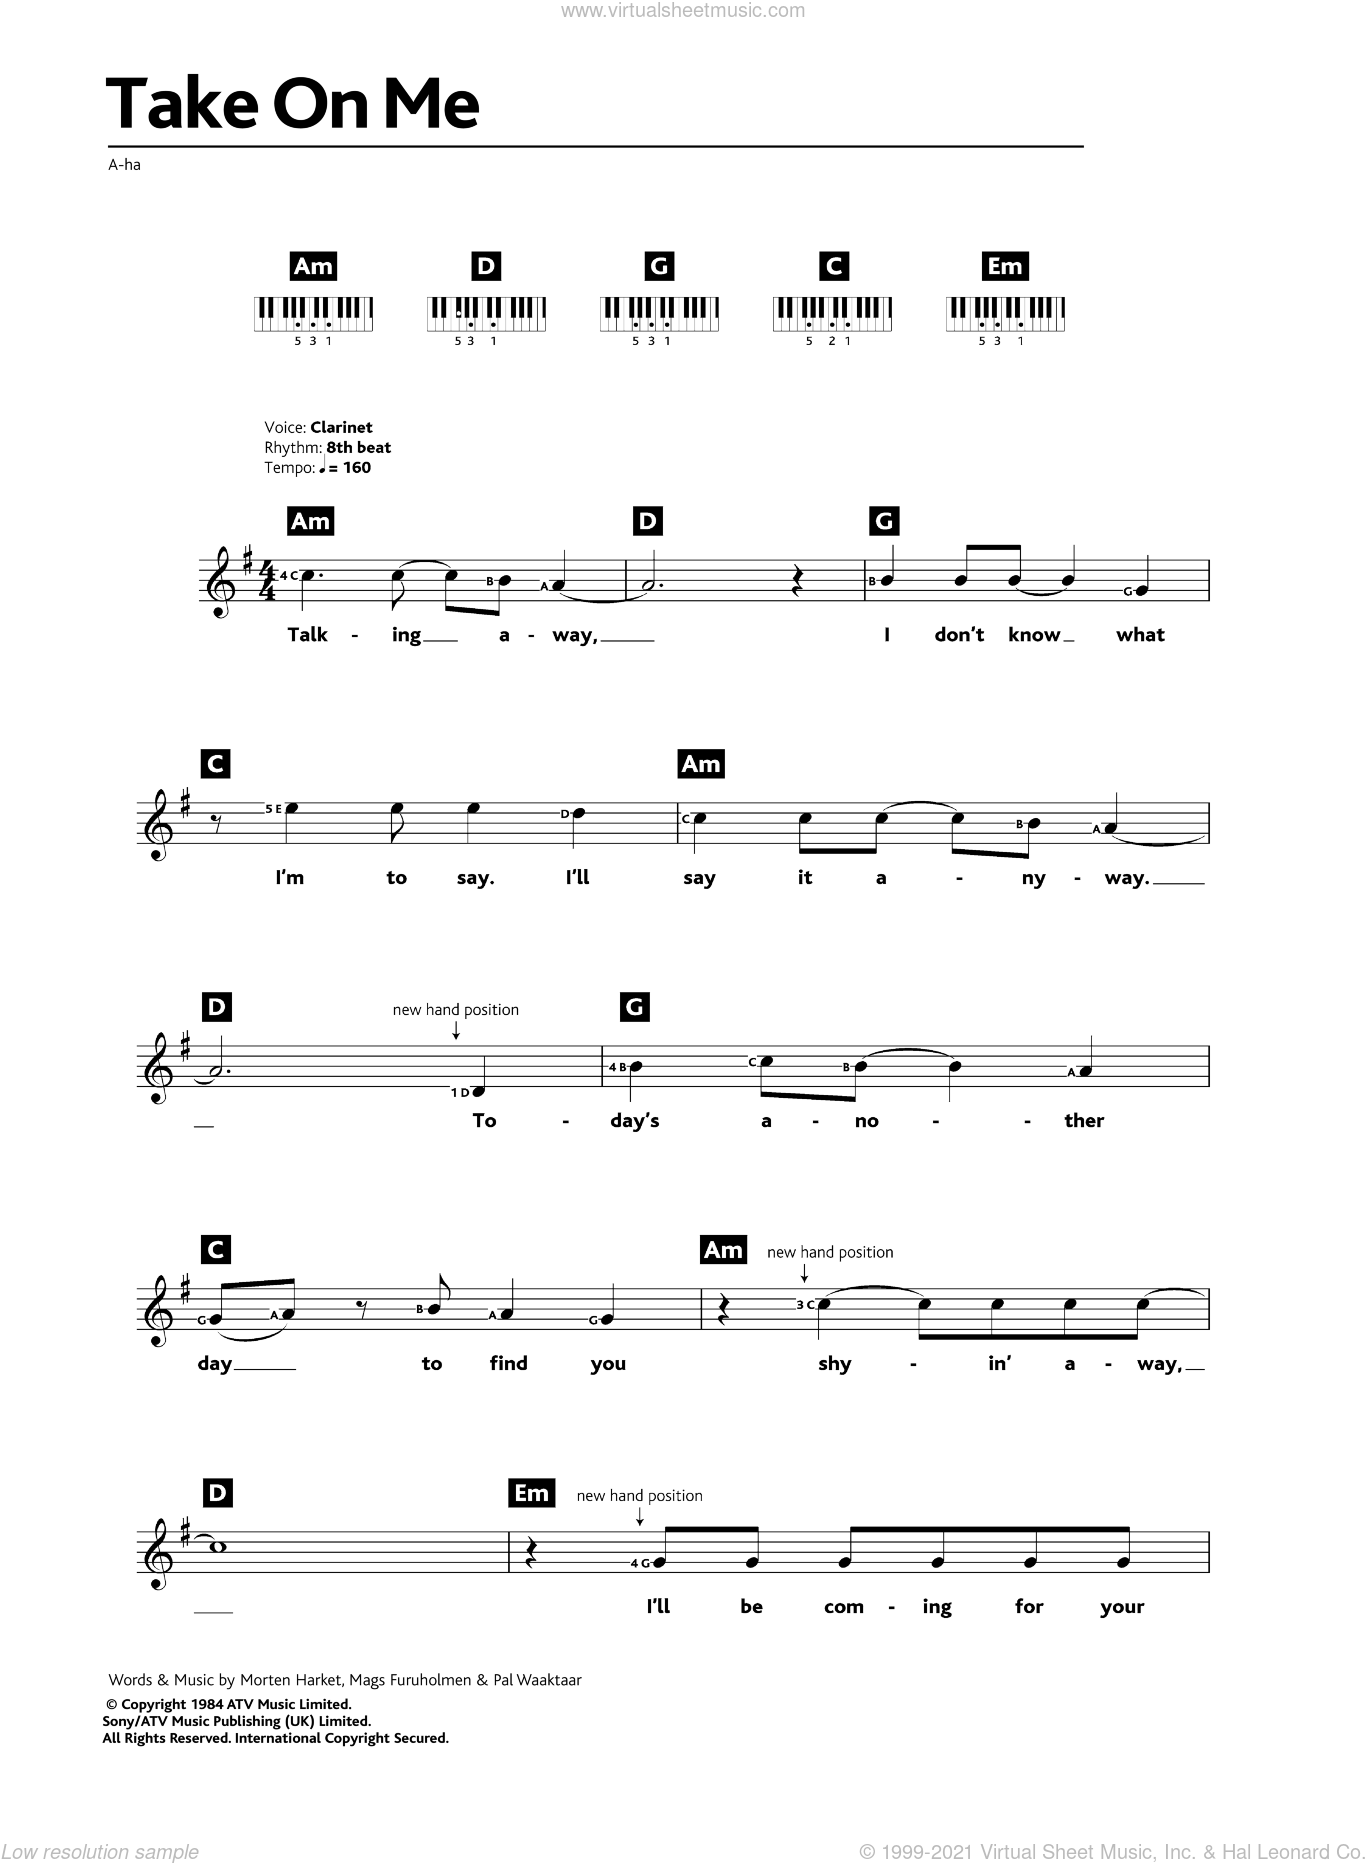 Take On Me sheet music for piano solo (chords, lyrics, melody) by a-ha, Mags Furuholmen, Morten Harket and Pal Waaktaar, intermediate piano (chords, lyrics, melody)